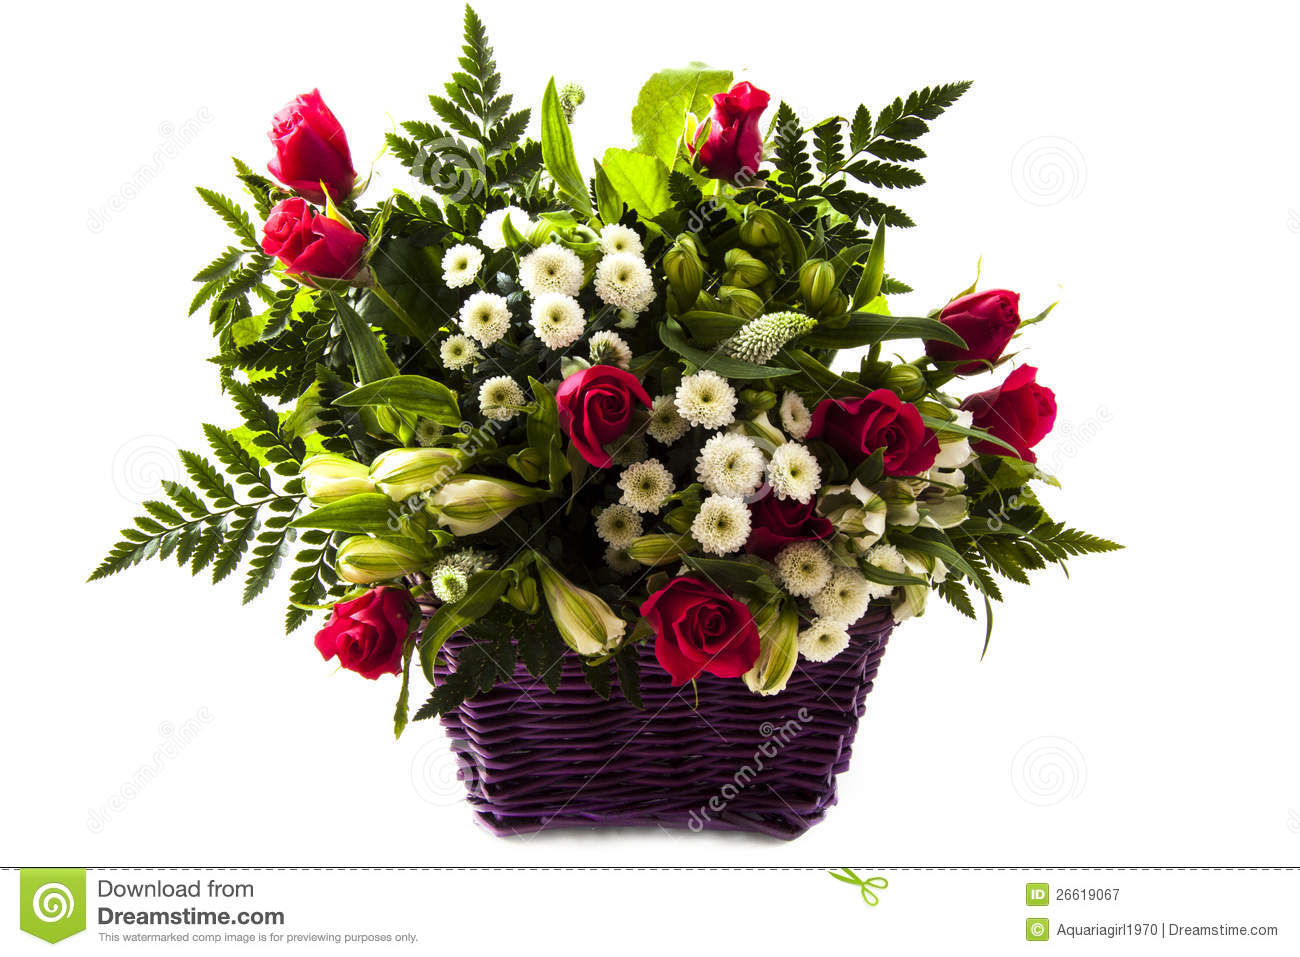 Awesome gift flower images download flower t negle Images